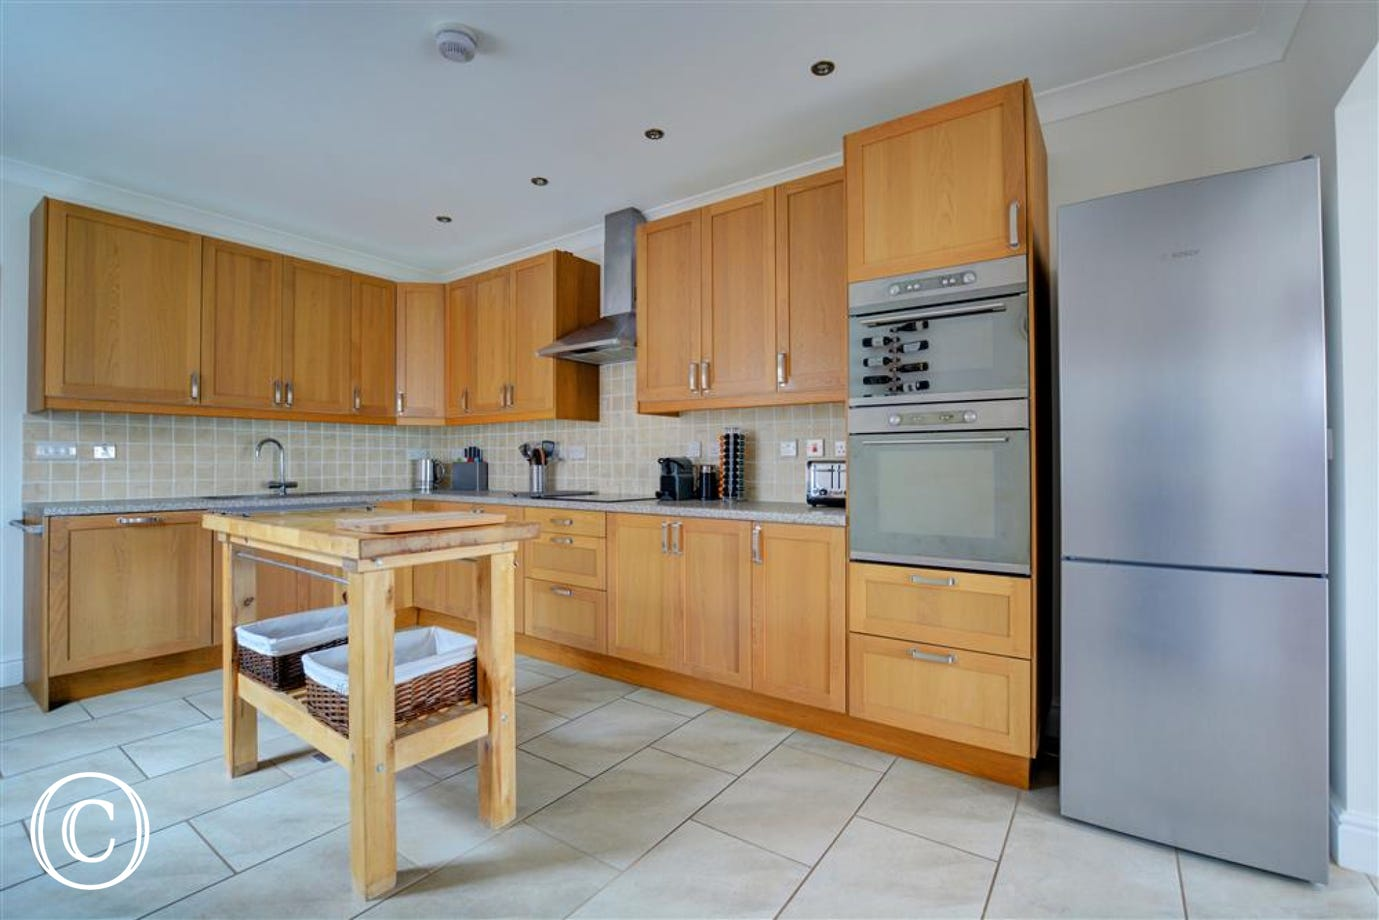 Lovely modern kitchen with electric oven and hob